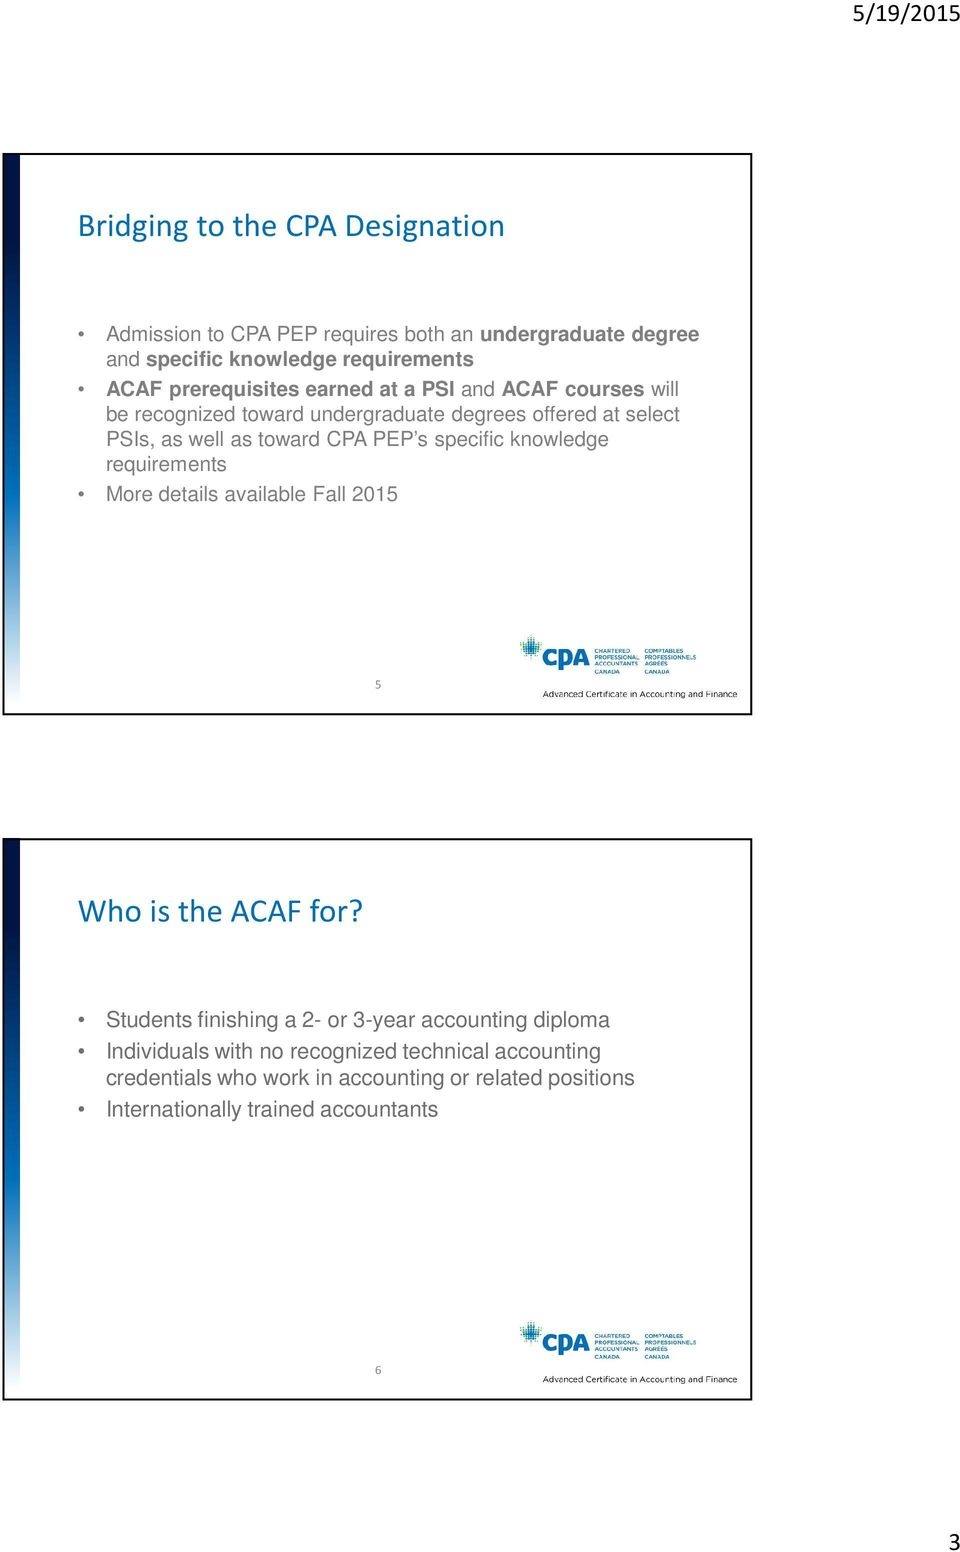 What Is The Advanced Certificate In Accounting And Finance Pdf